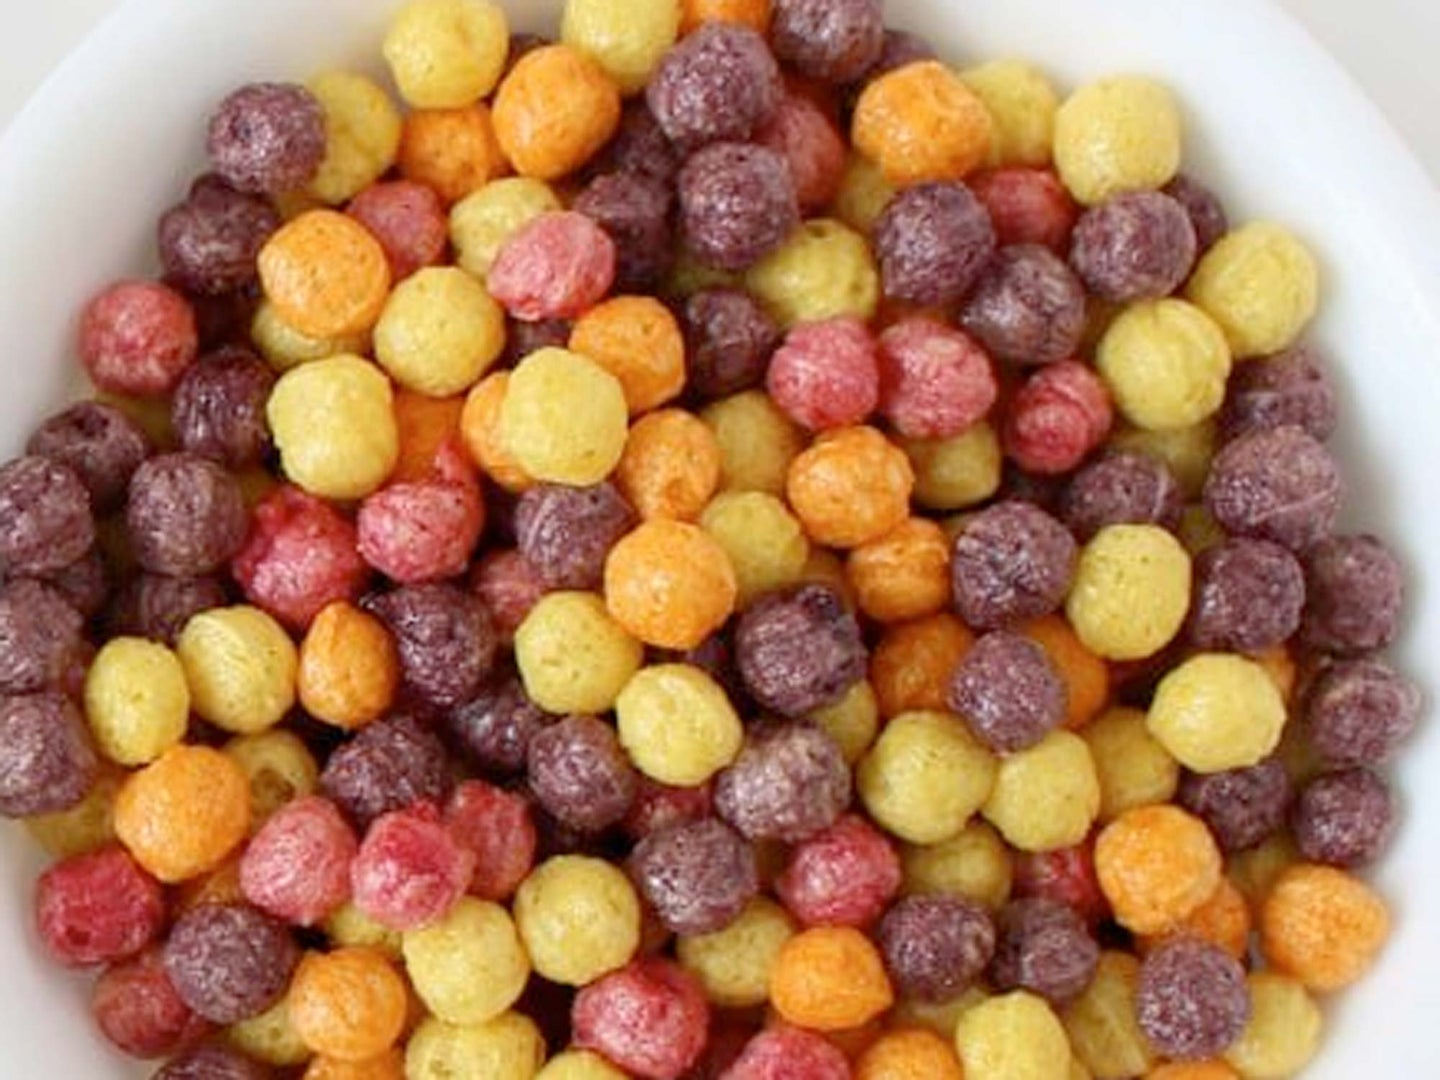 New Trix All Natural Colors Are Here to Ruin Your Childhood Breakfast